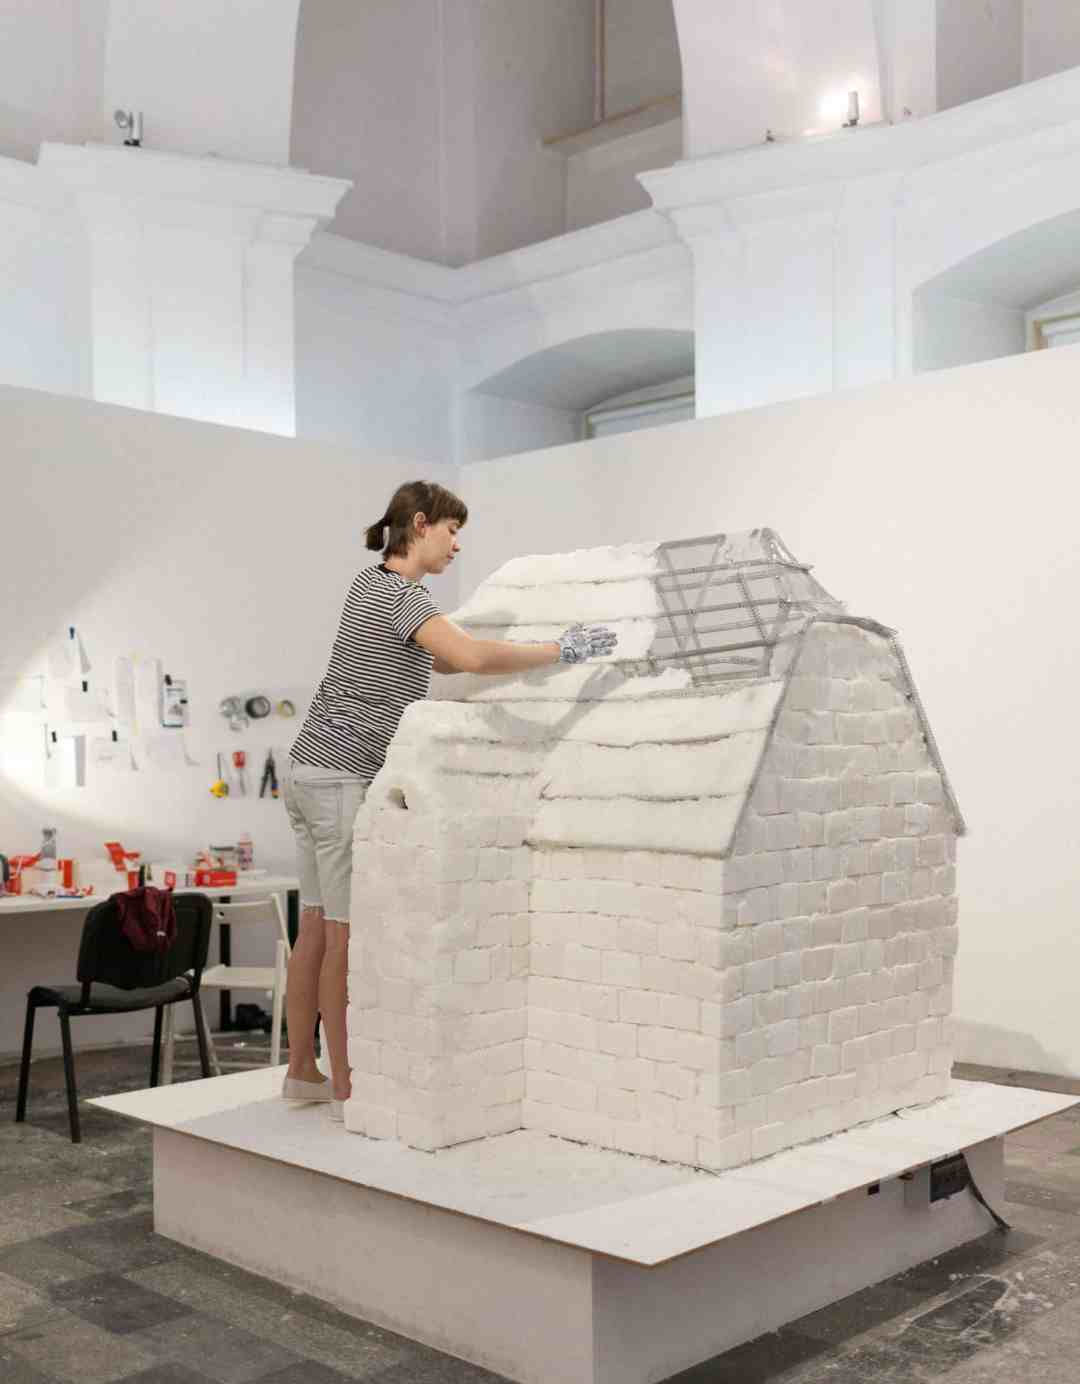 Home Sweet Home, House made of sugar, slowly heated, based on the design of the villa on the Kochanowskiego 21 Alley in Wroclaw (WYKWIT), 2017, photo Alicja Kielan